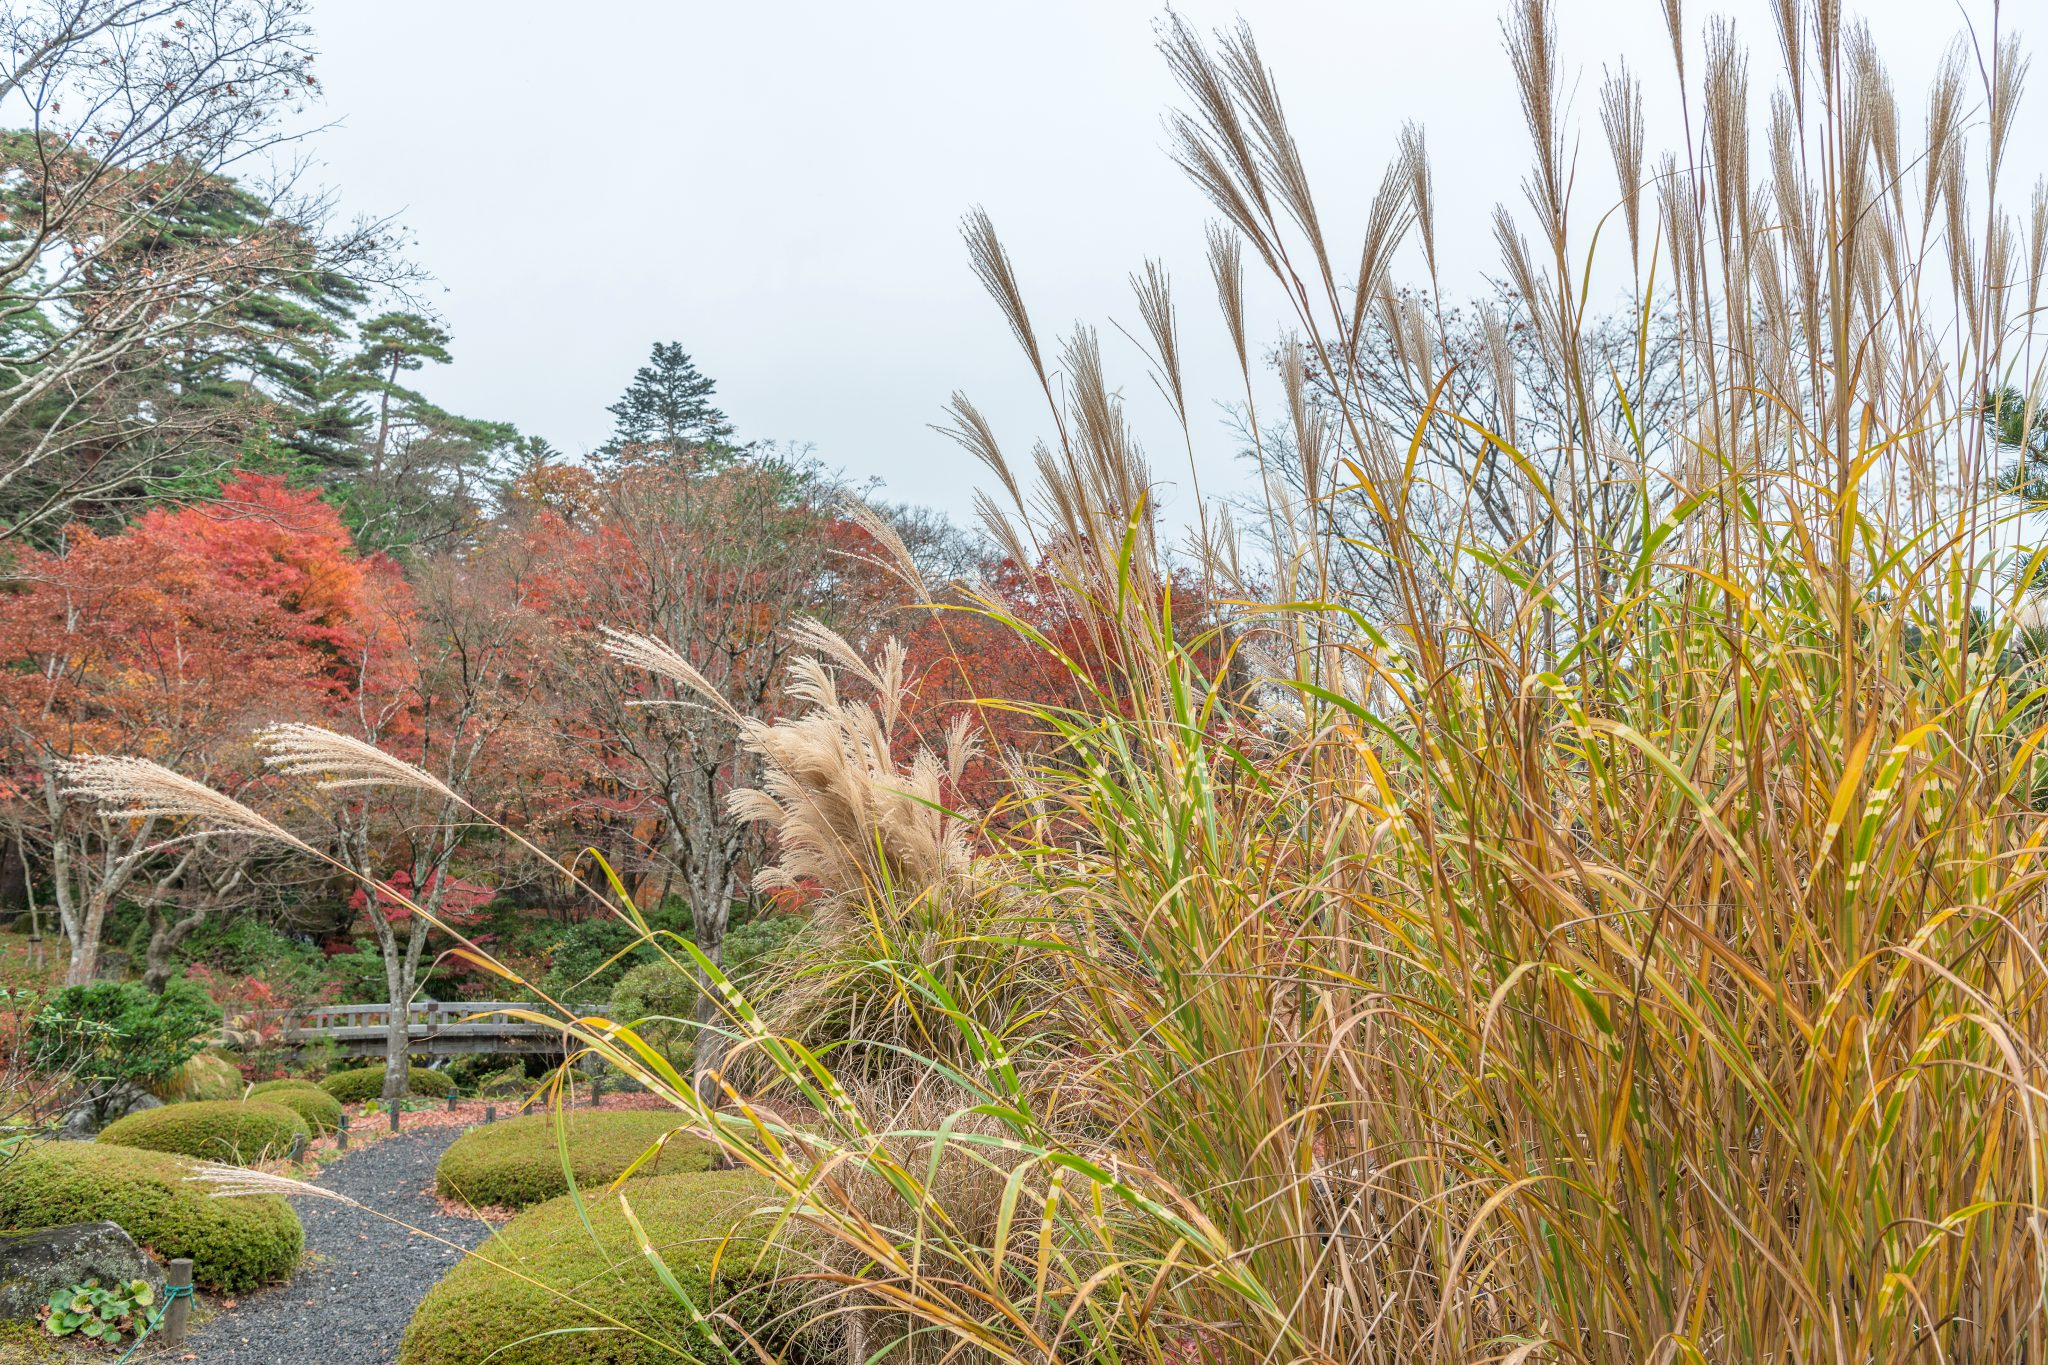 Ornamental Grasses in a landscape